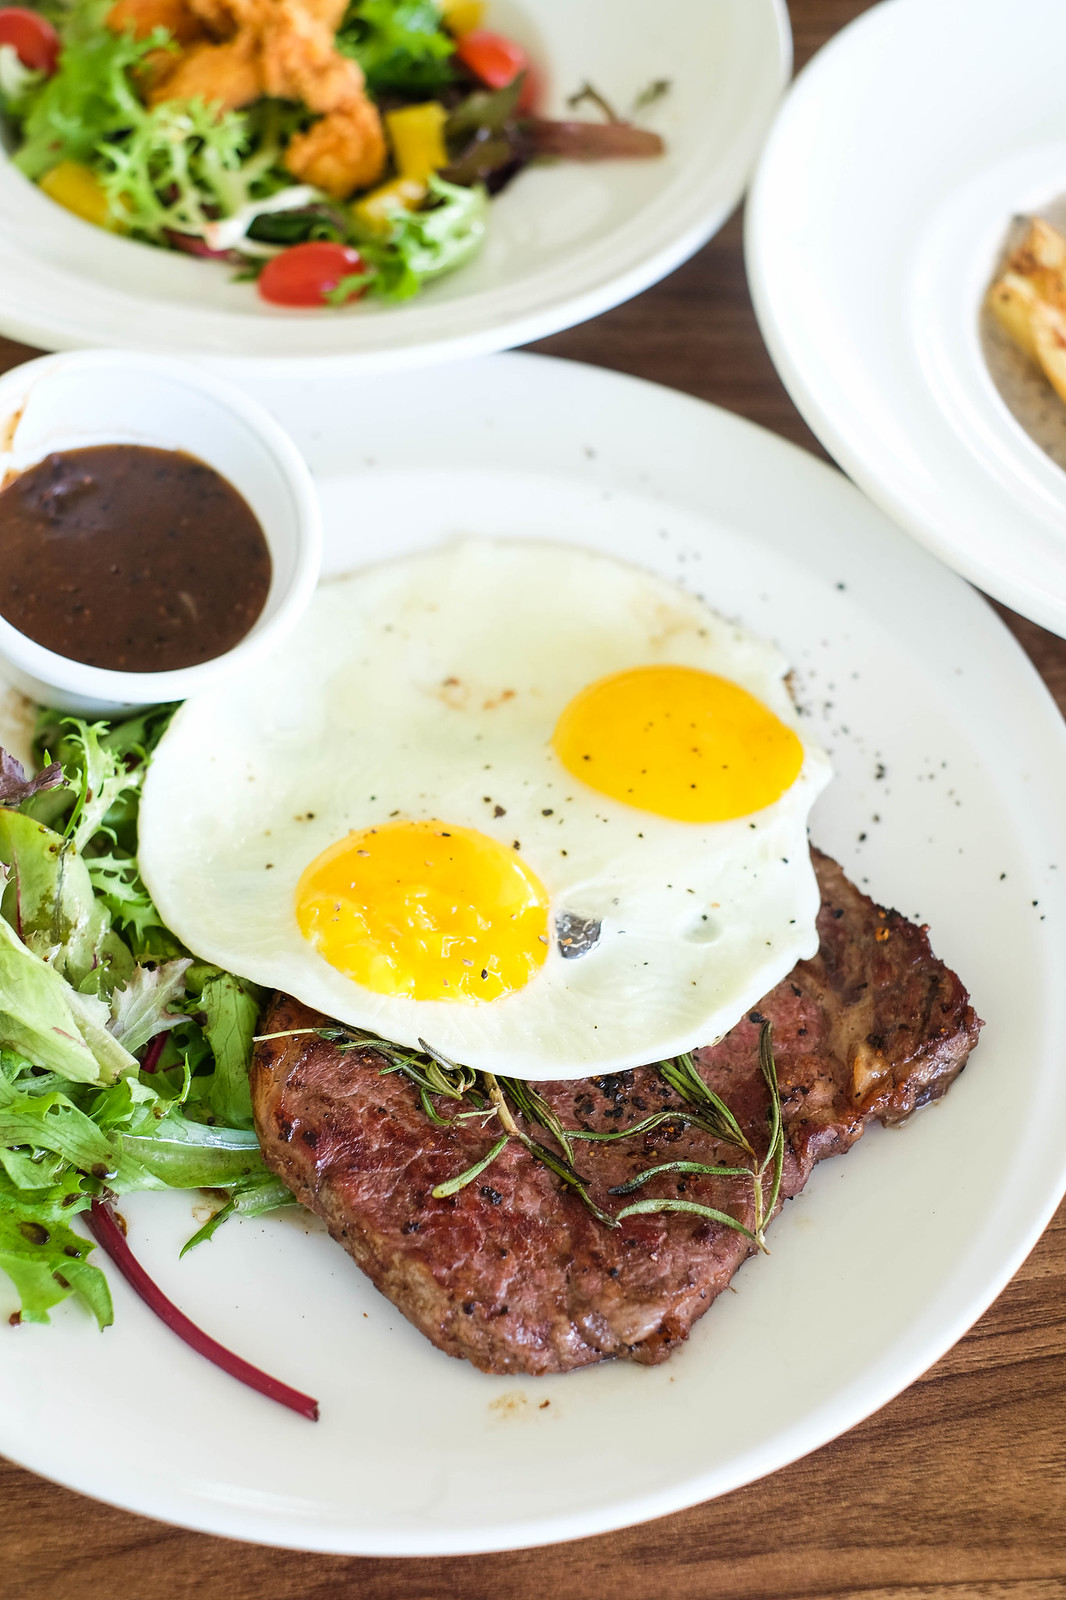 The Seagrill Steak and Eggs